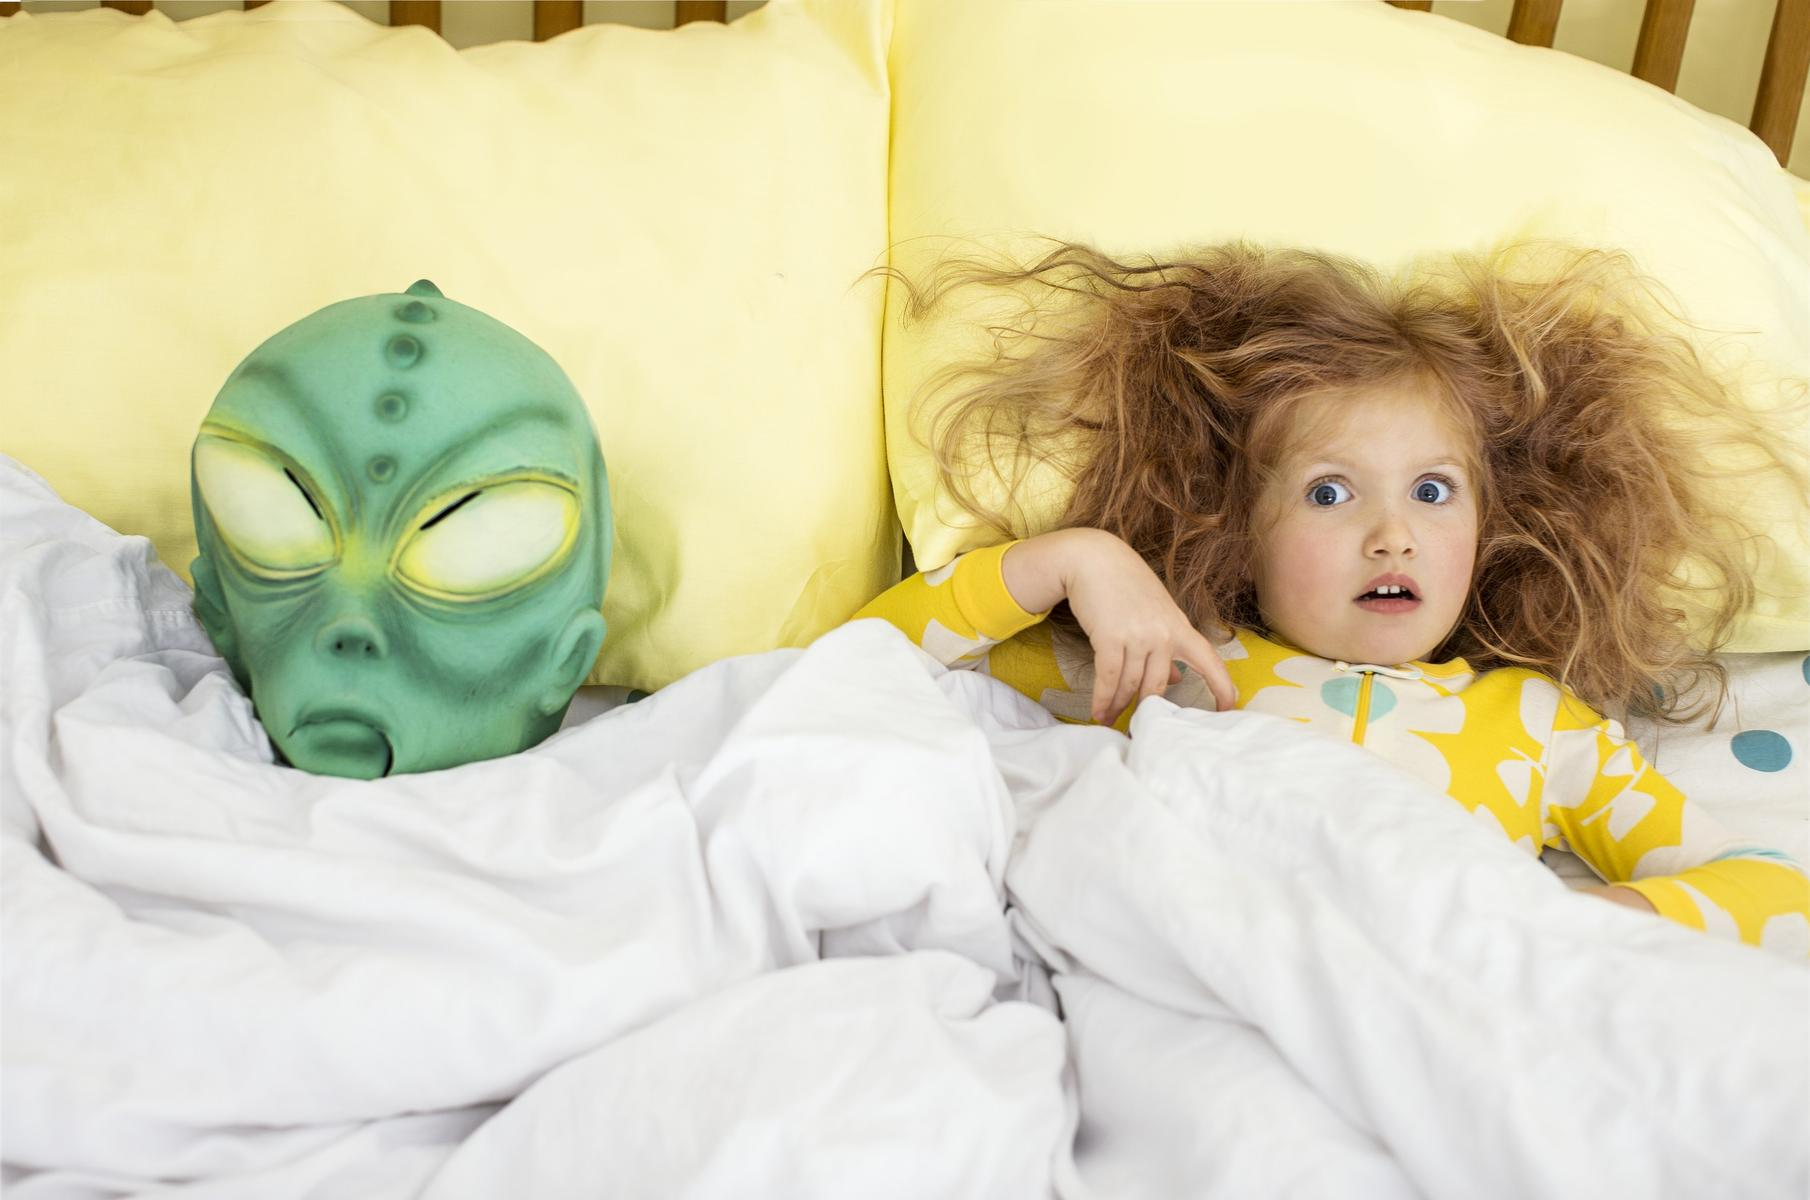 Nightmares: 6 Steps To Stop Scary Dreams